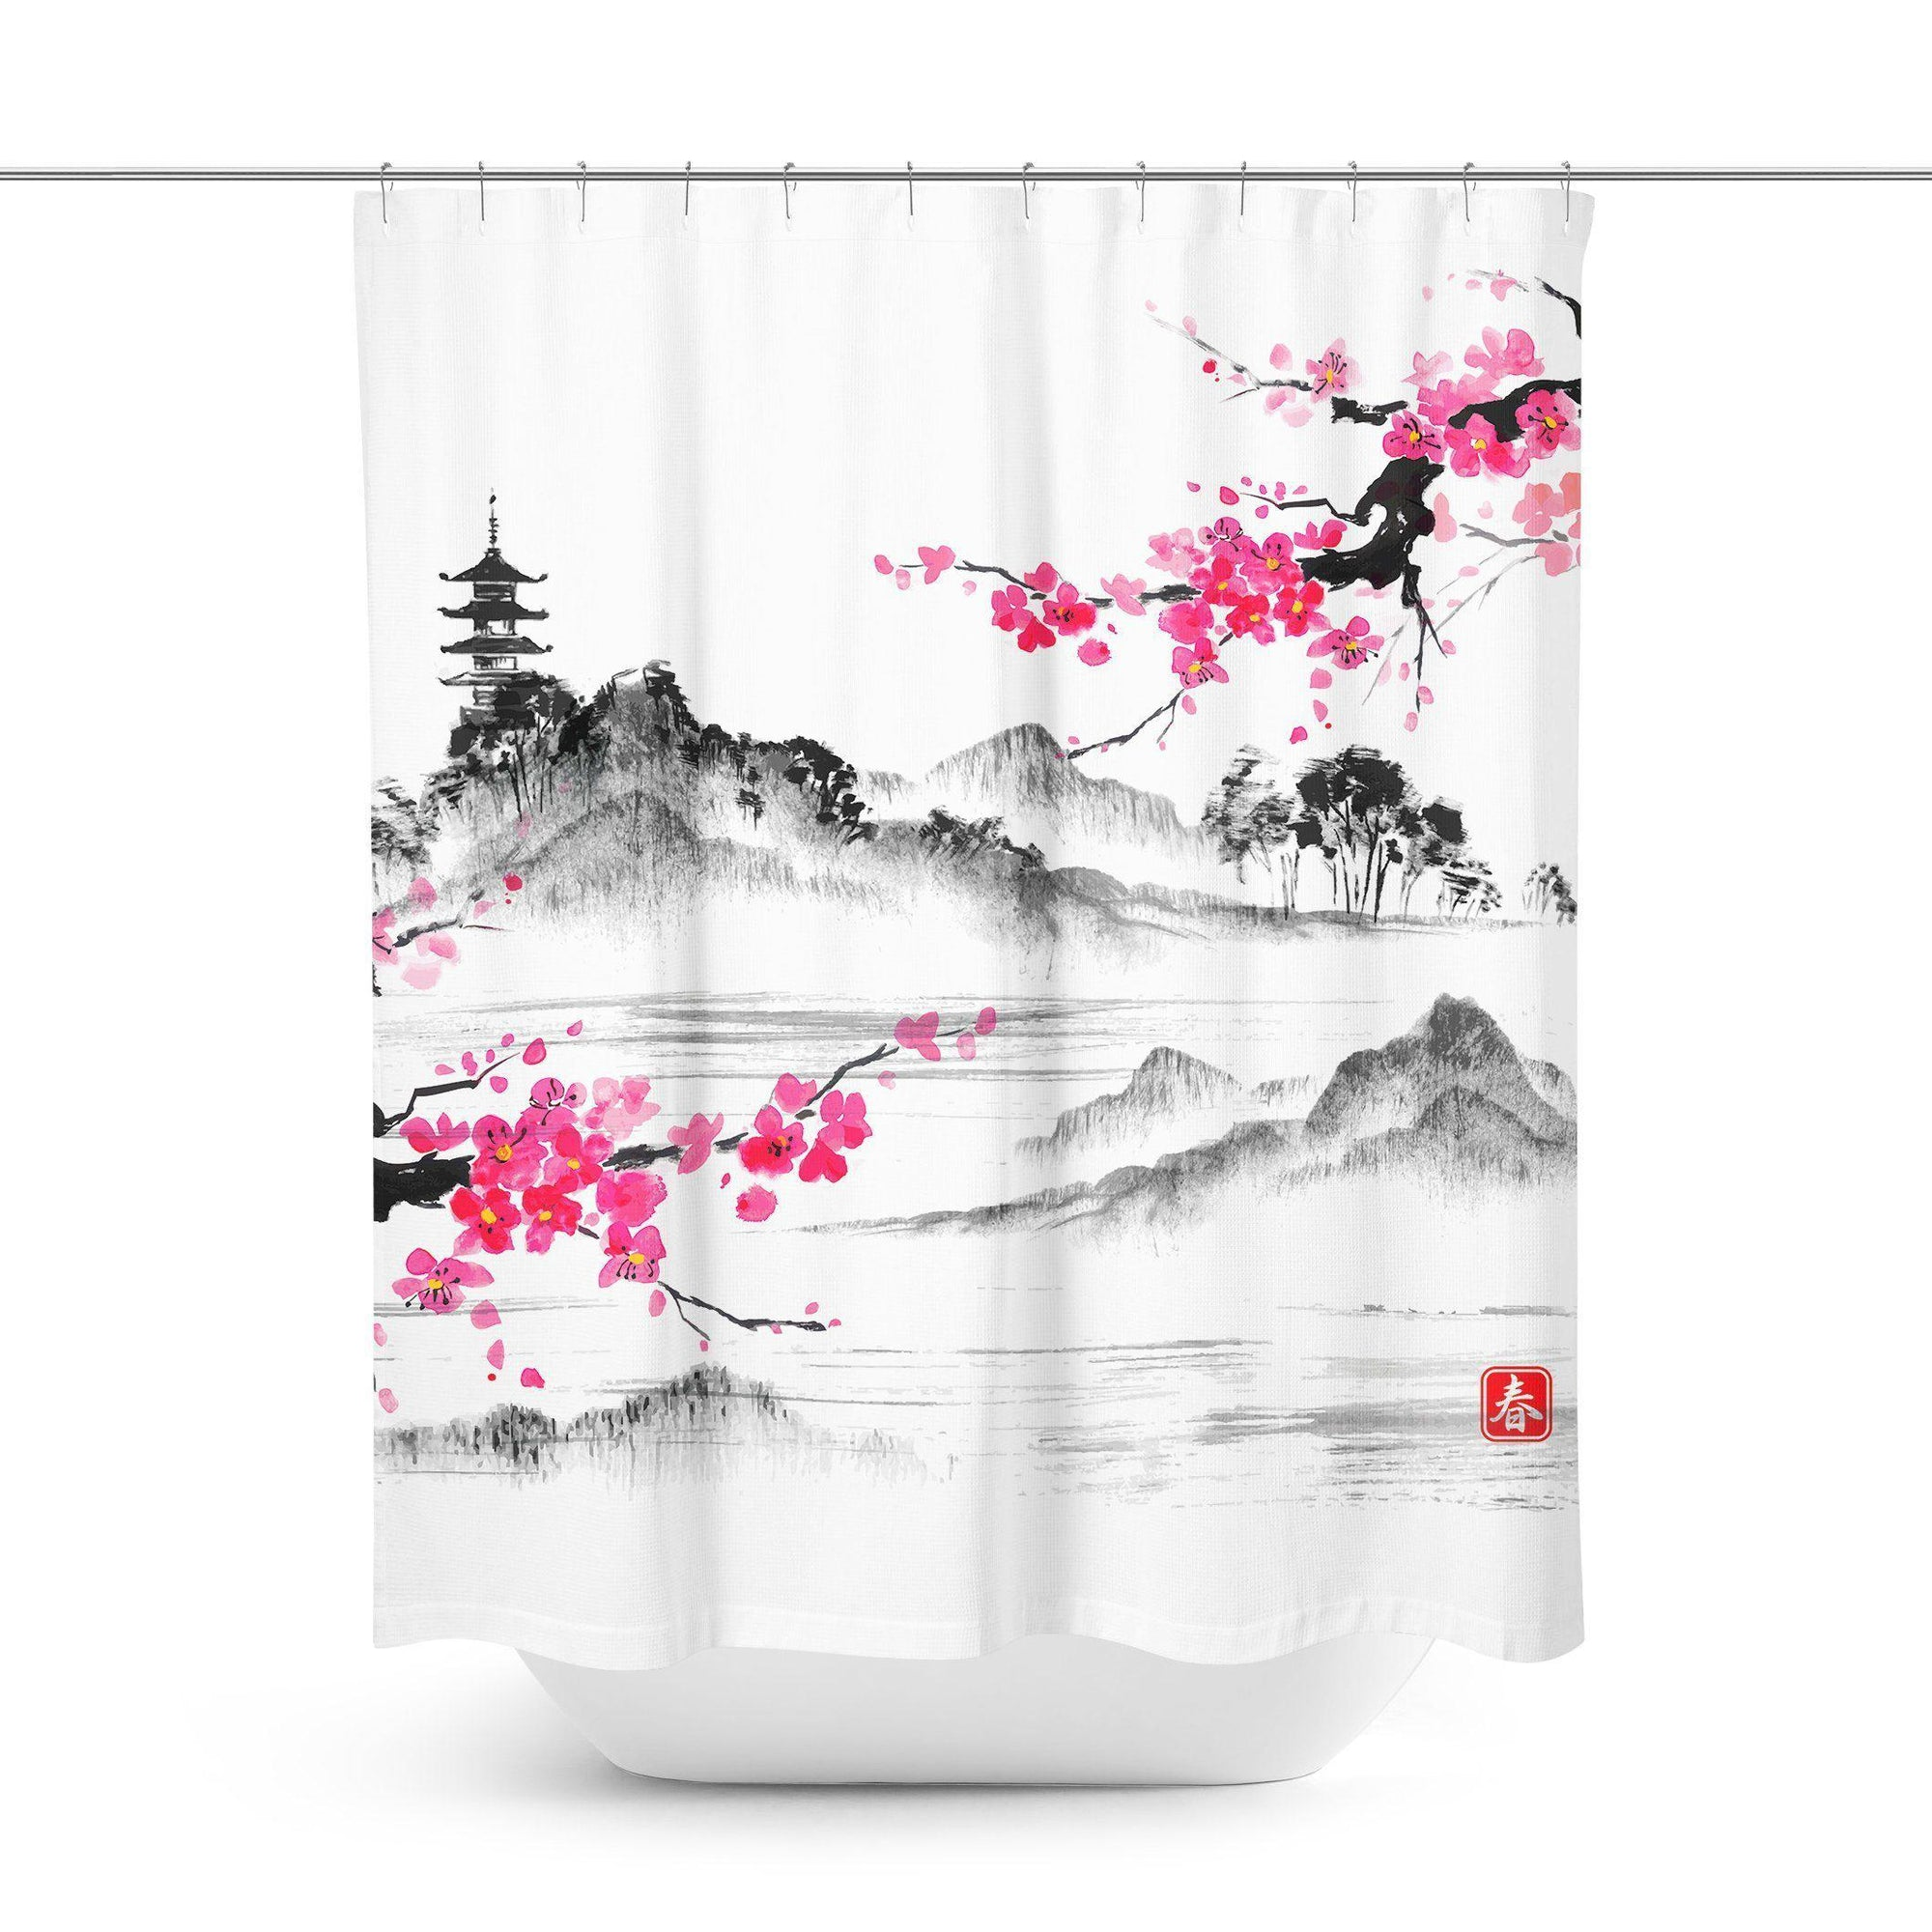 Japanese Landscape Shower Curtain - Shower Curtains - W.FRANCIS